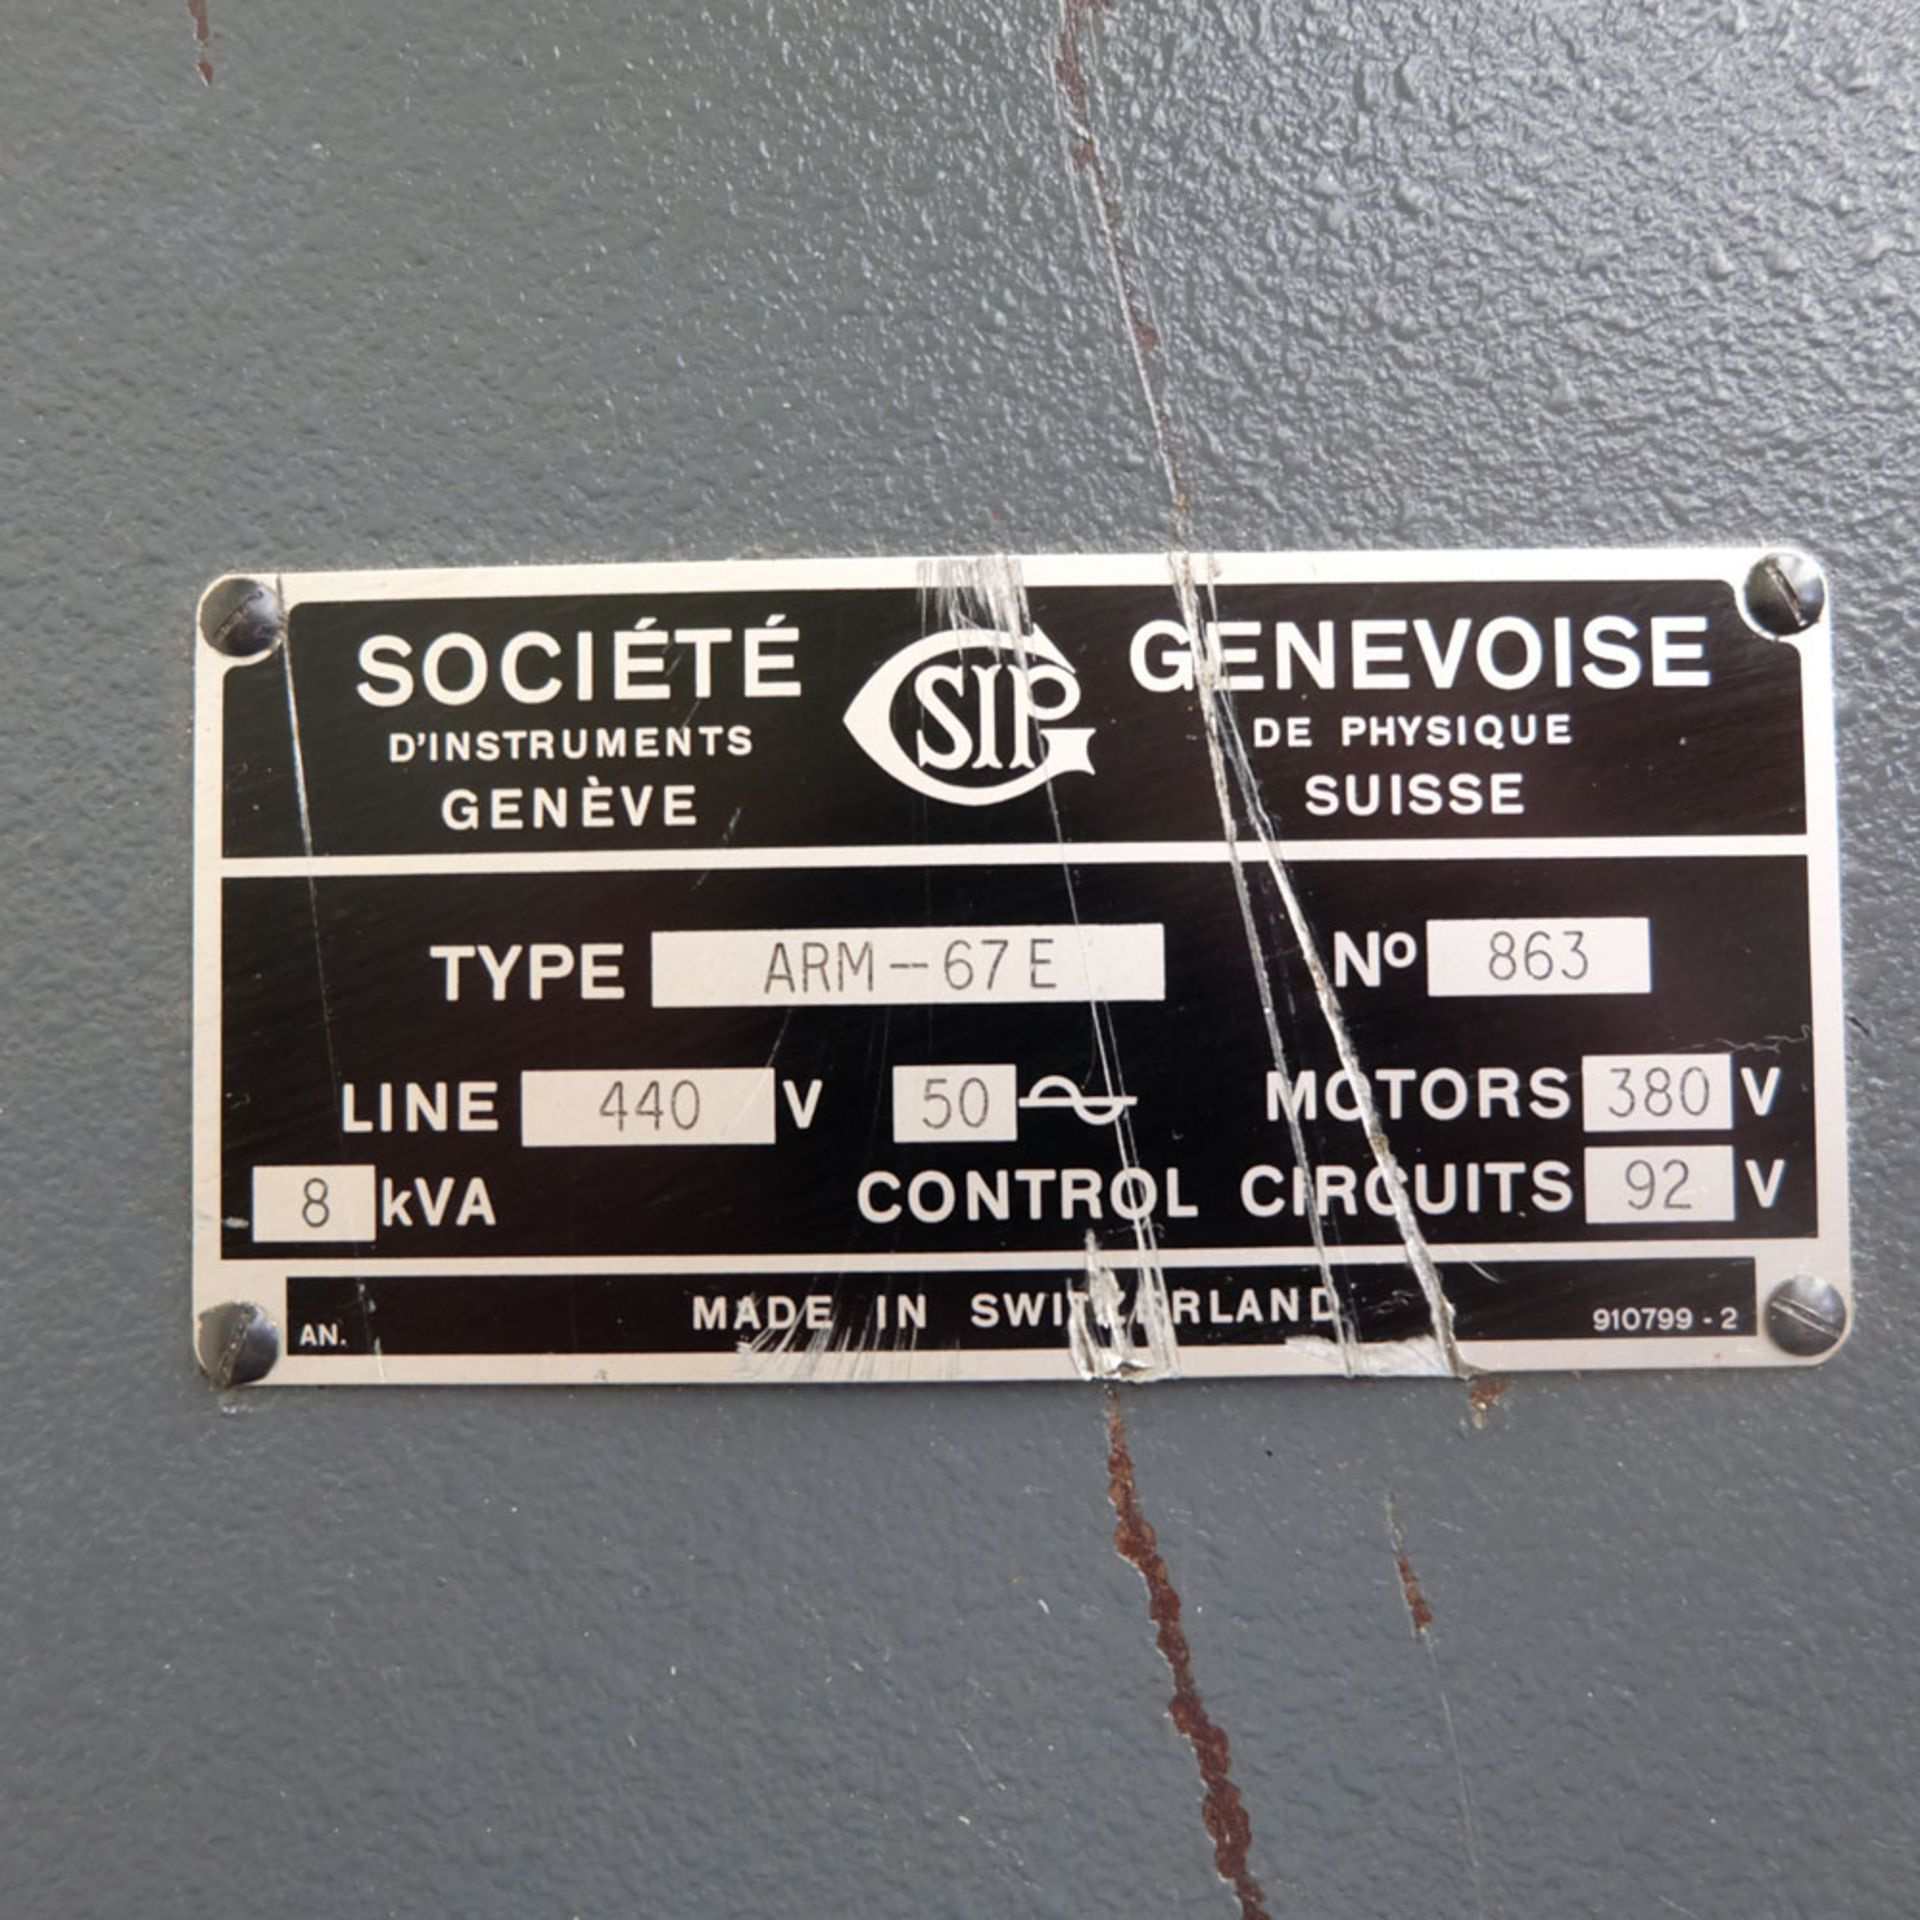 SIP Genevoise Hydroptic - 6A High Precision Jig Boring And Milling Machine. - Image 13 of 25